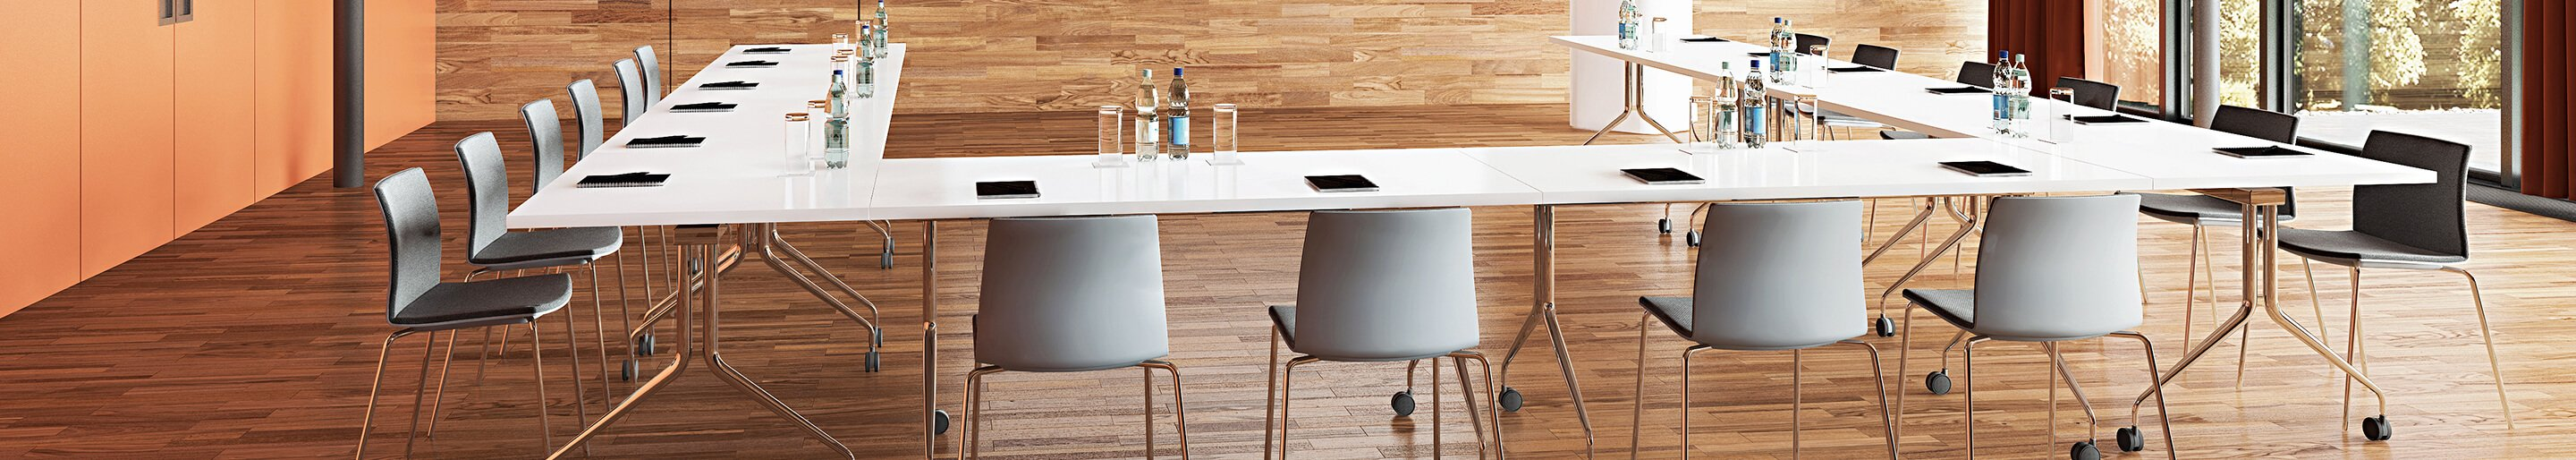 Indoor Seminar & Conference chairs for your hotel, restaurant or office